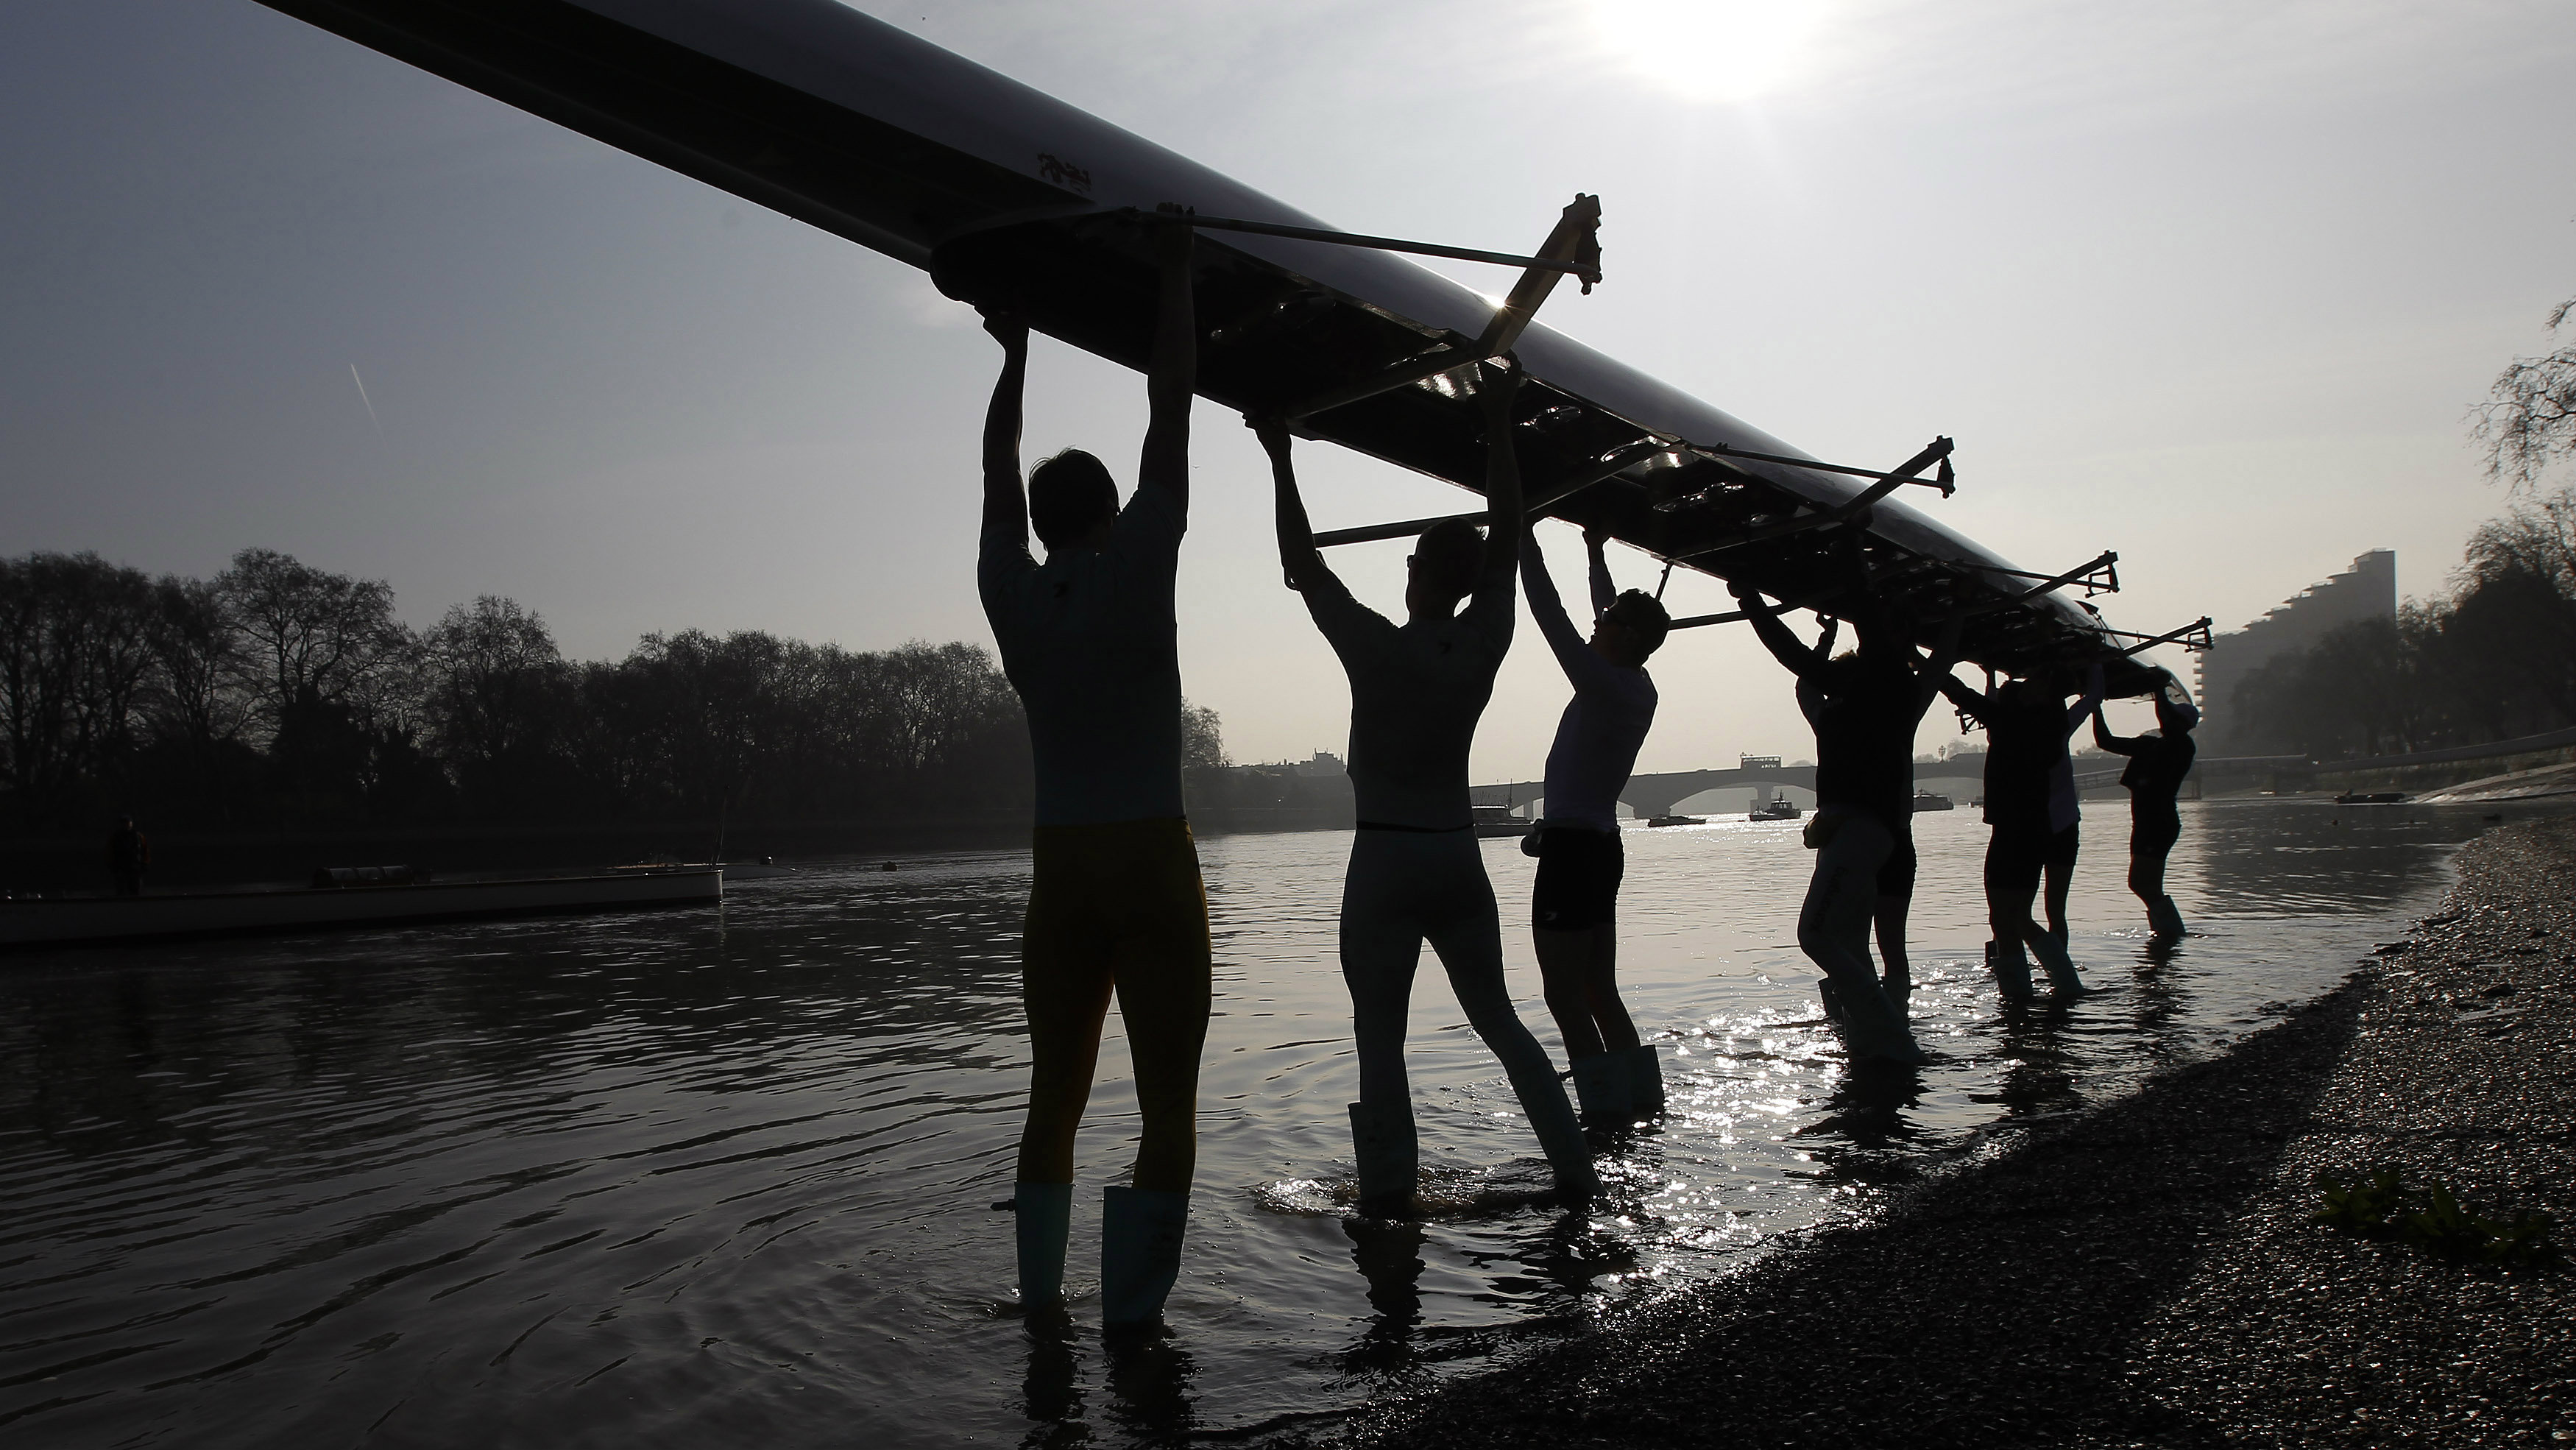 The Cambridge University rowing crew prepare for a training session on the River Thames in west London March 24, 2011. The rowing crews from Oxford and Cambridge will compete in the 152nd Boat Race, between the two universities on Saturday. REUTERS/Stefan Wermuth